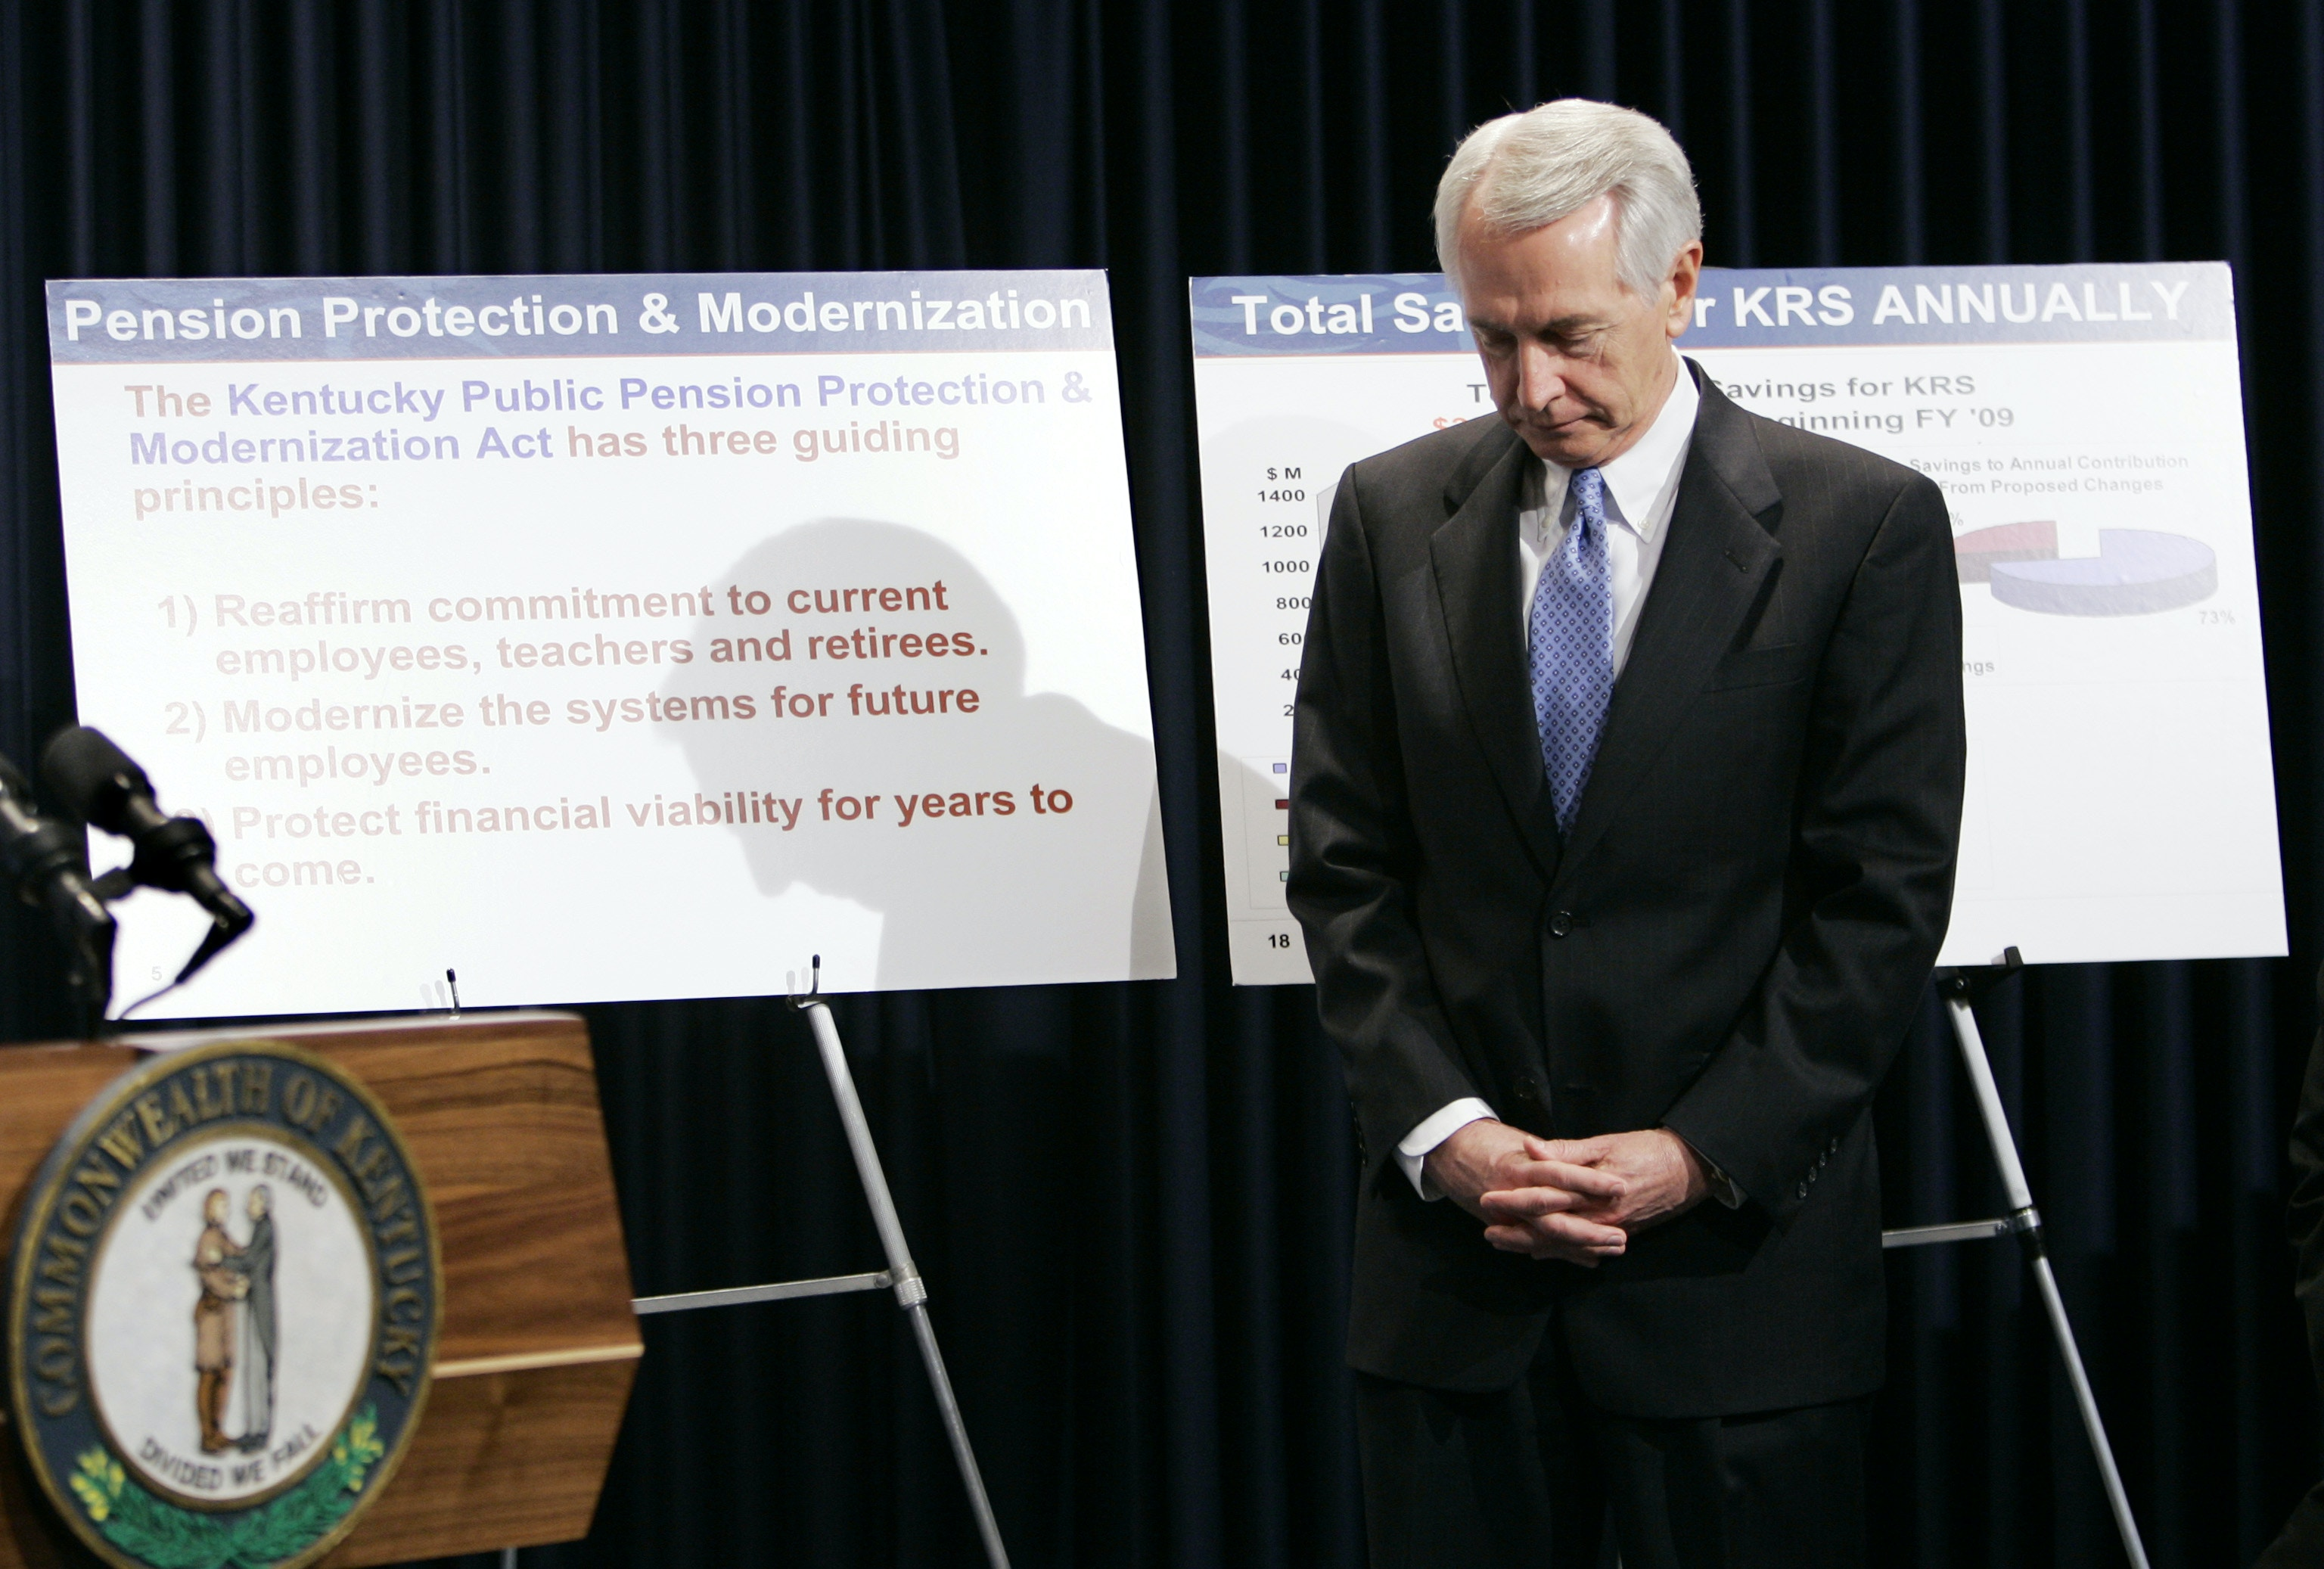 Gov. Steve Beshear stands in front of graphics during a news conference to announce his plan to reform the state's pension system, in Frankfort, Ky., Thursday, Feb. 21, 2008. (AP Photo/Ed Reinke)